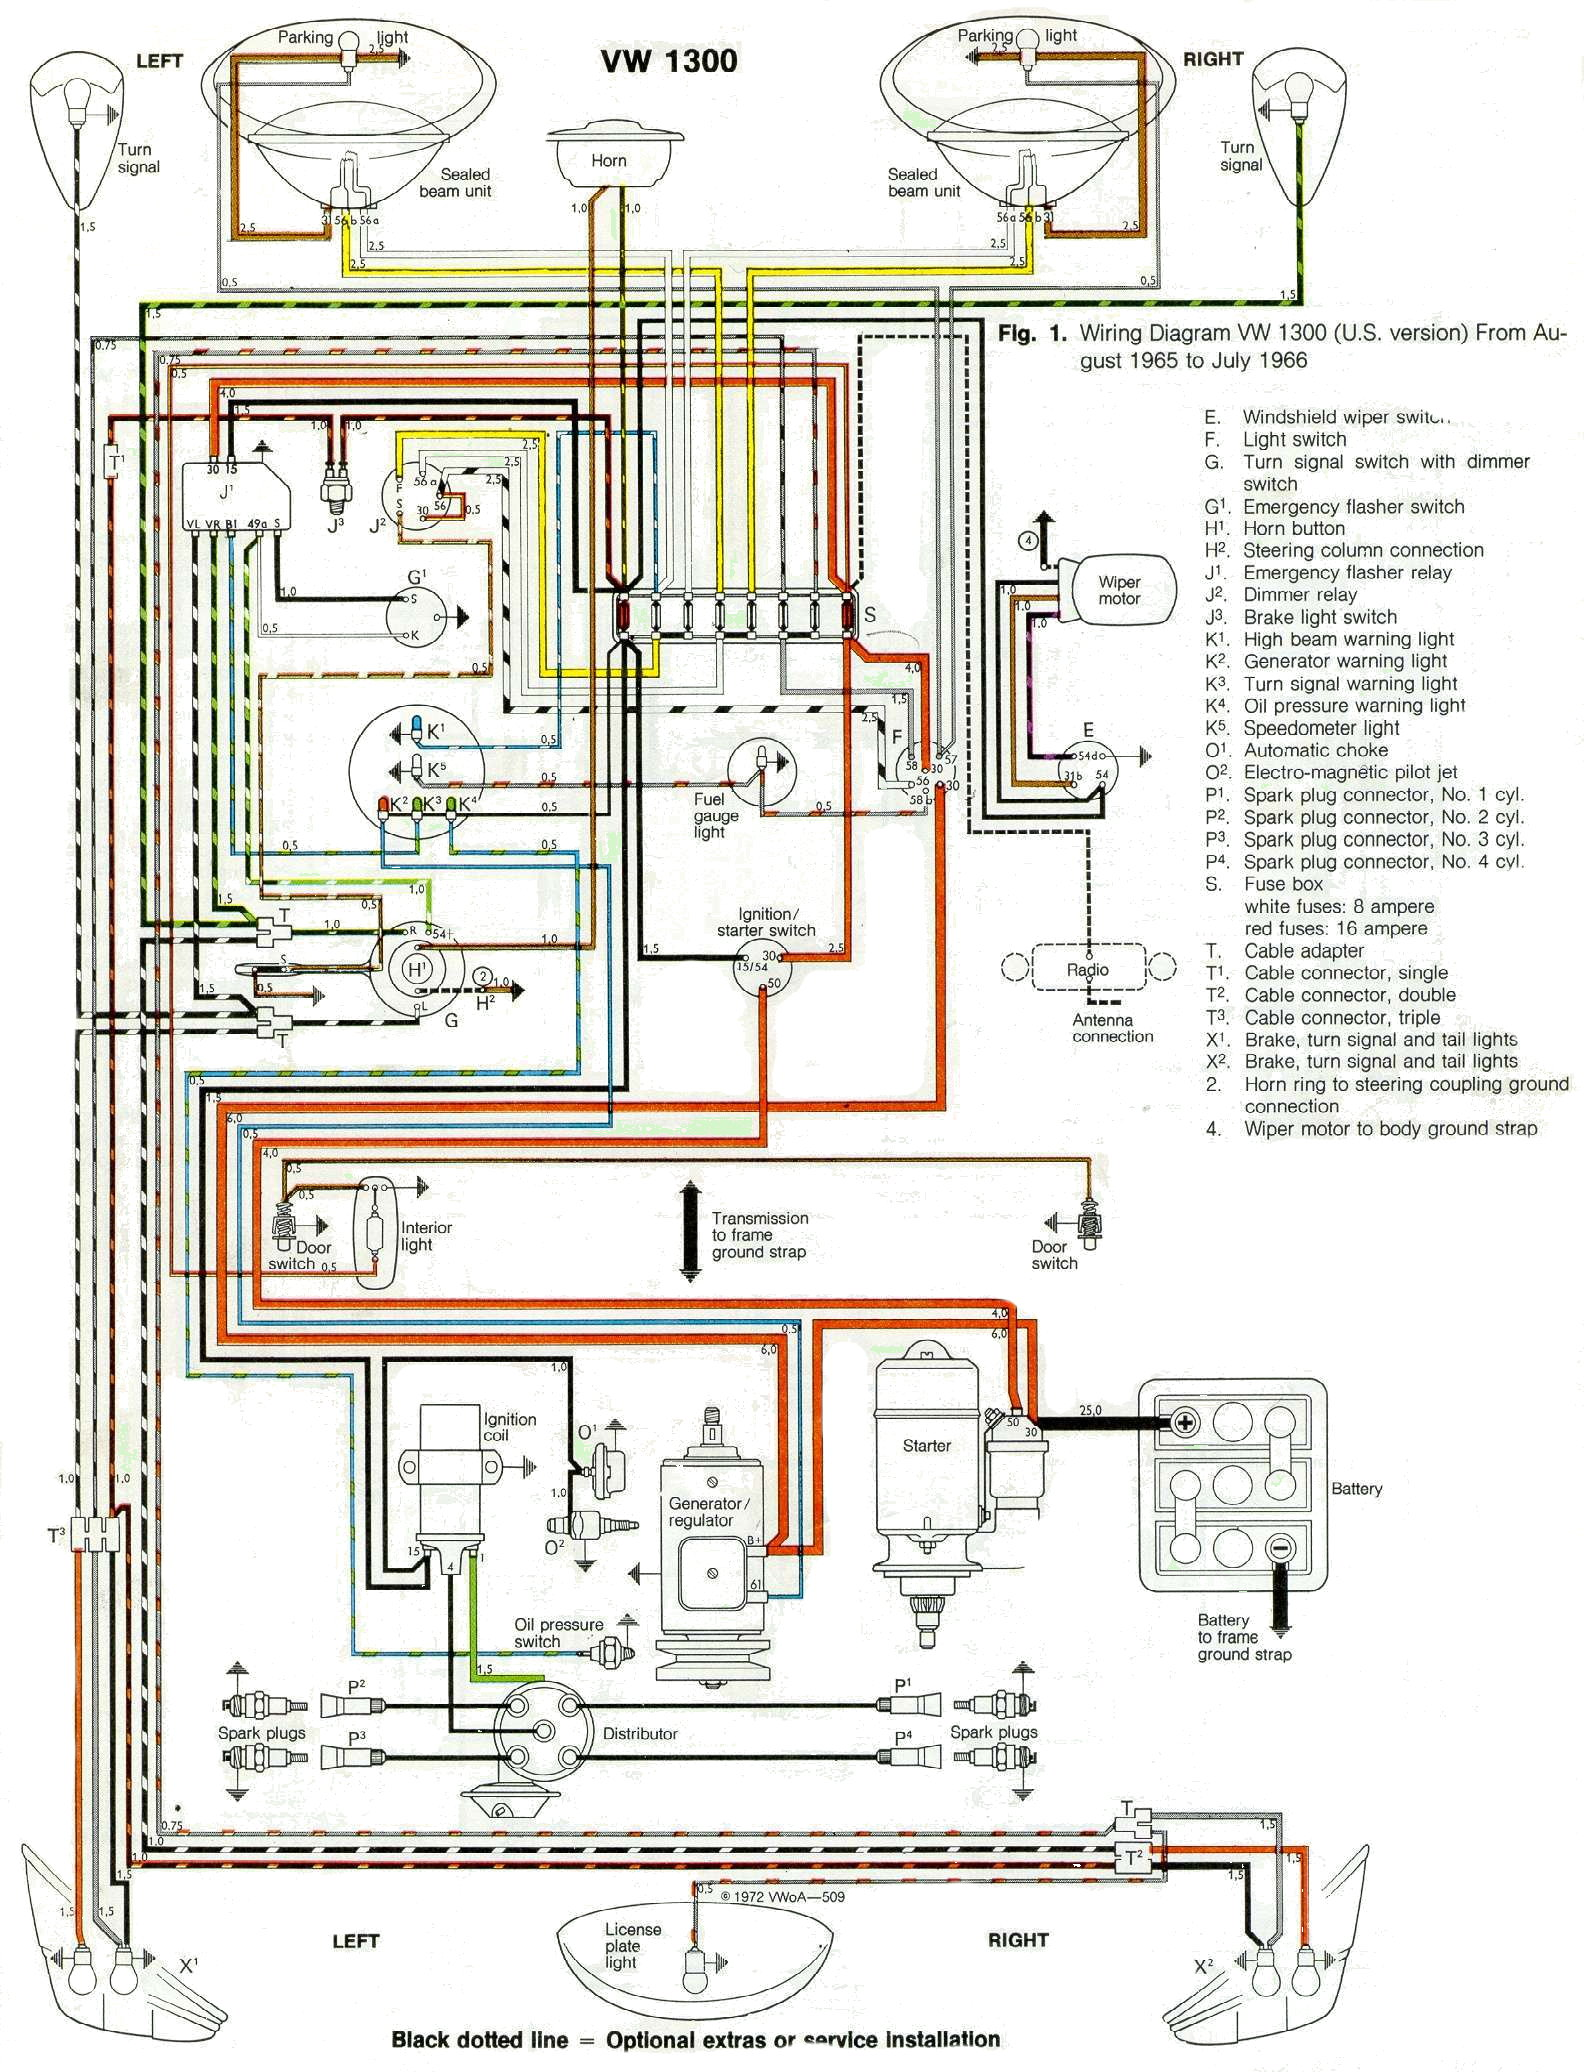 vw beetle relay diagram image wiring diagram new beetle starter wiring diagram new auto wiring diagram schematic on 1999 vw beetle relay diagram